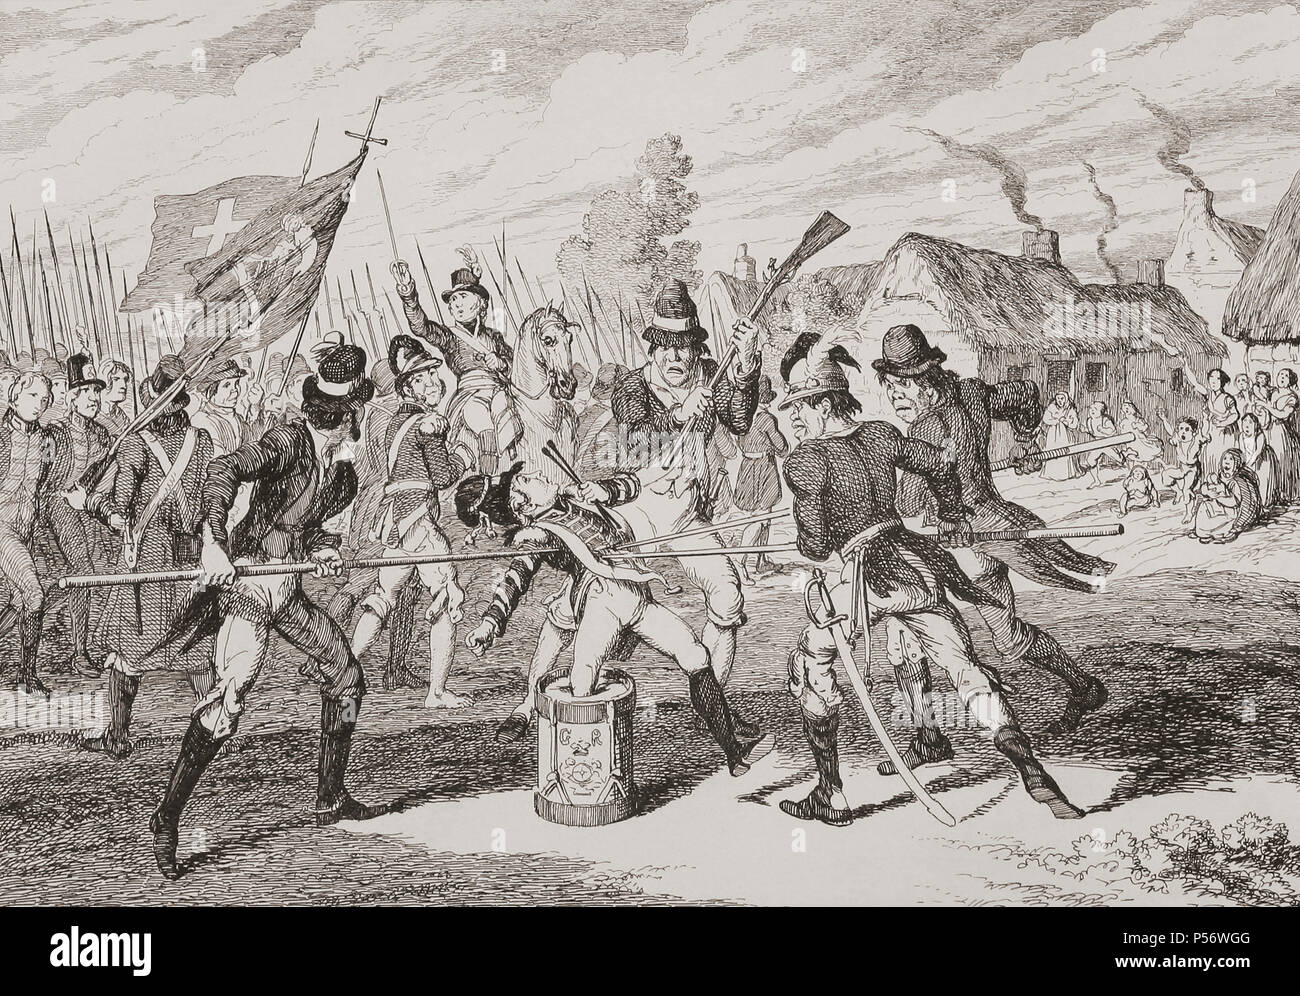 """""""The Loyal Little Drummer"""". Illustration by George Cruikshank.  During the 1798 Irish Rebellion a captured 12 years old British drummer boy was ordered by insurgents to beat his drum for them.  He refused and was murdered.  From History of the Irish Rebellion in 1798; with Memoirs of the Union, and Emmett's Insurrection in 1803 by W.H. Maxwell. Published in London 1854. - Stock Image"""